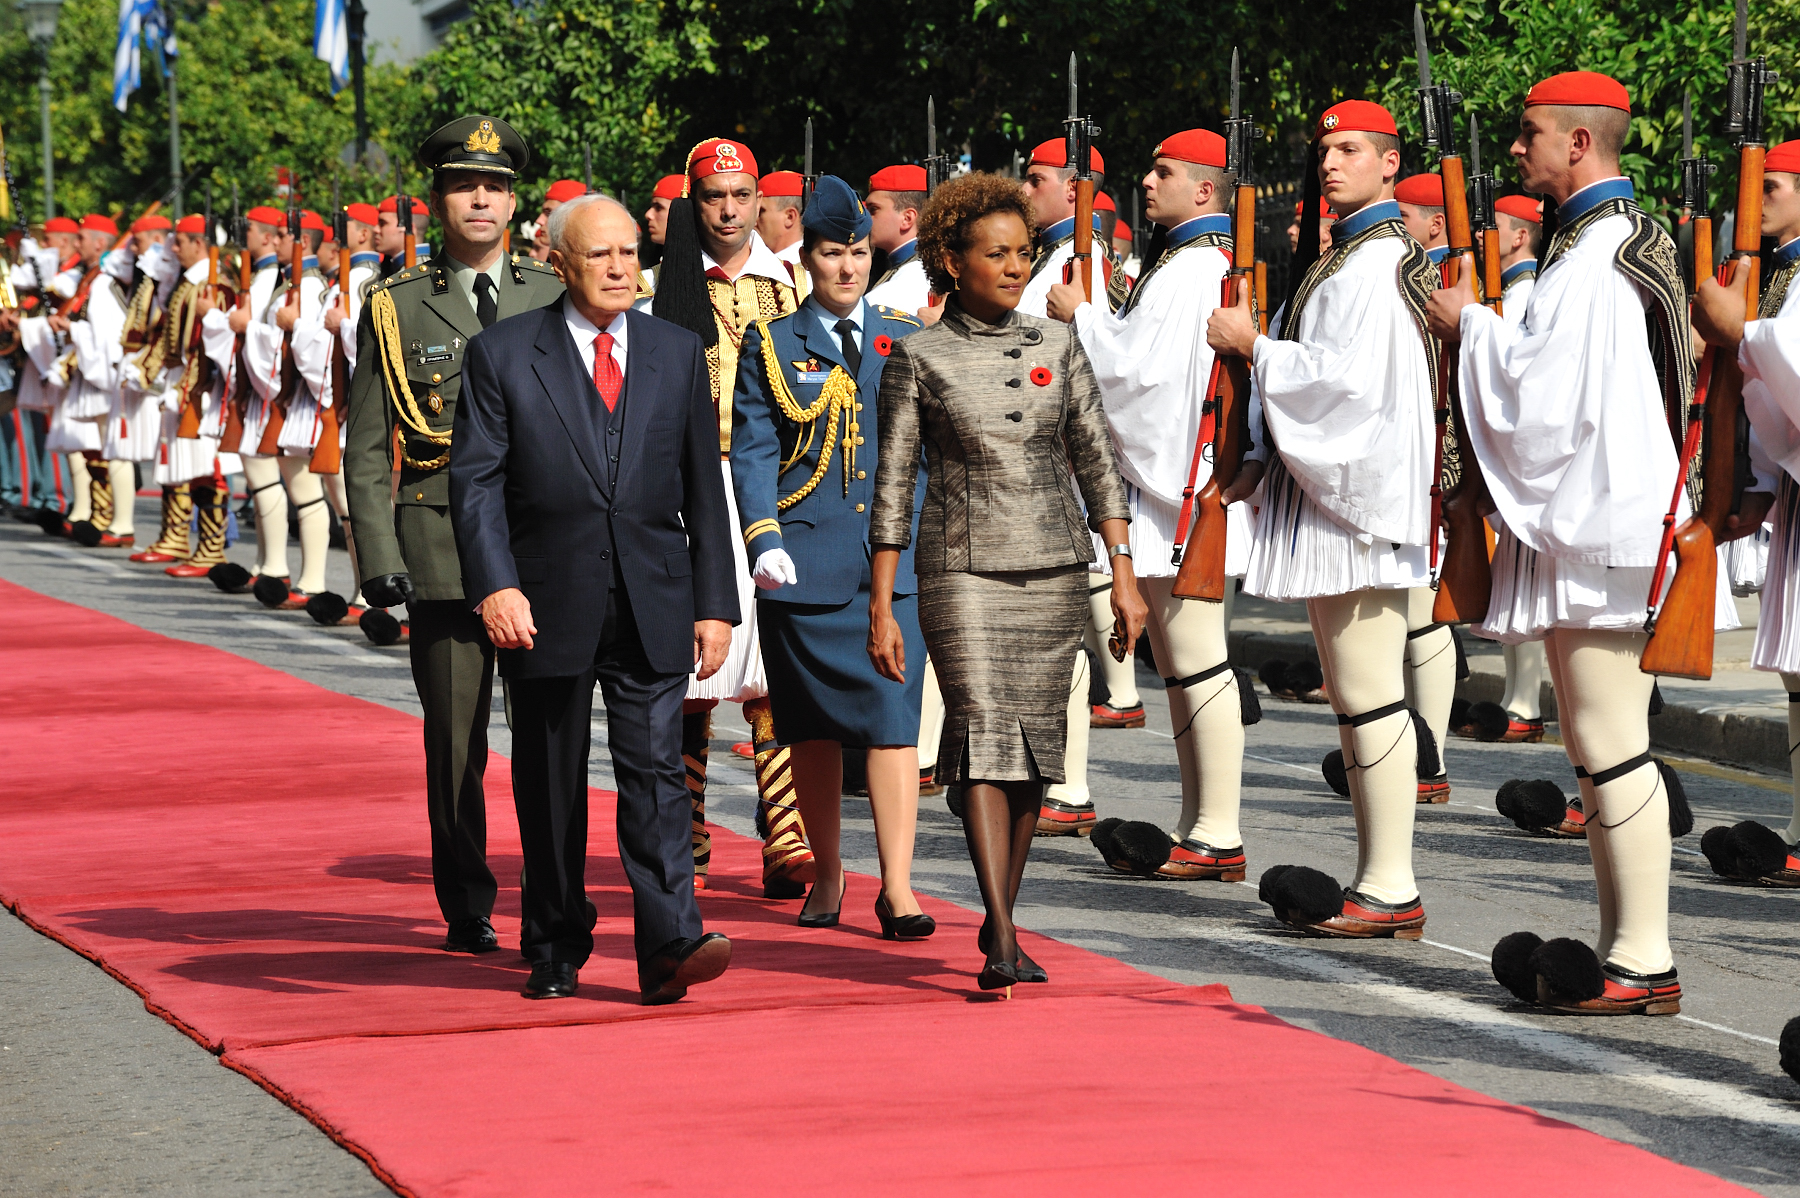 The Governor General was officially welcomed to Greece by His Excellency Karolos Papoulias, President of the Hellenic Republic, during a ceremony with military honours. Both walked in front of the Guard of Honour.